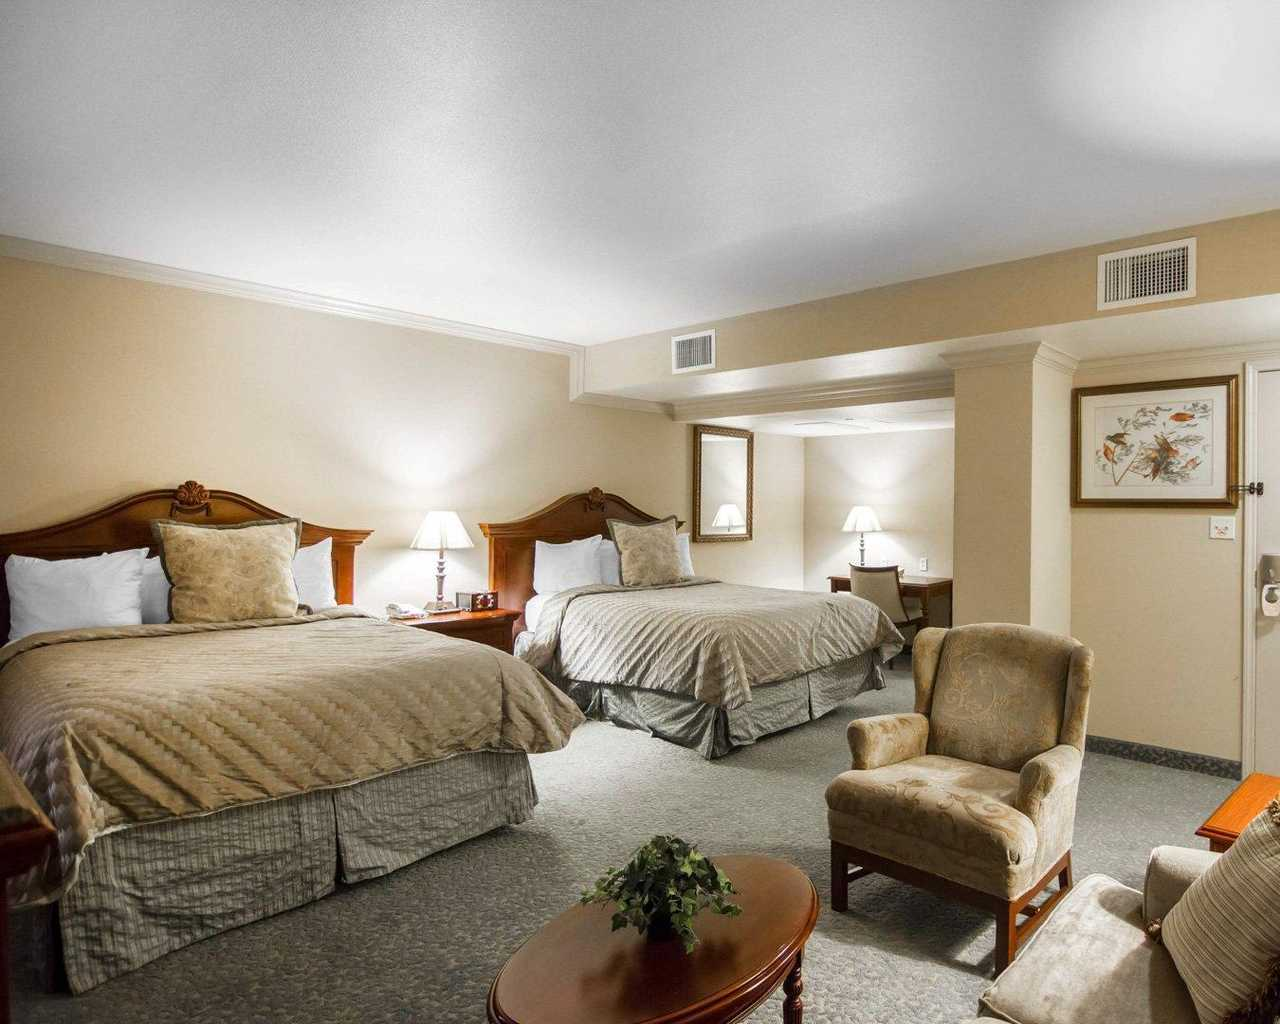 https://www.hotelsbyday.com/_data/default-hotel_image/1/9597/standardroomsbedroom1.jpg